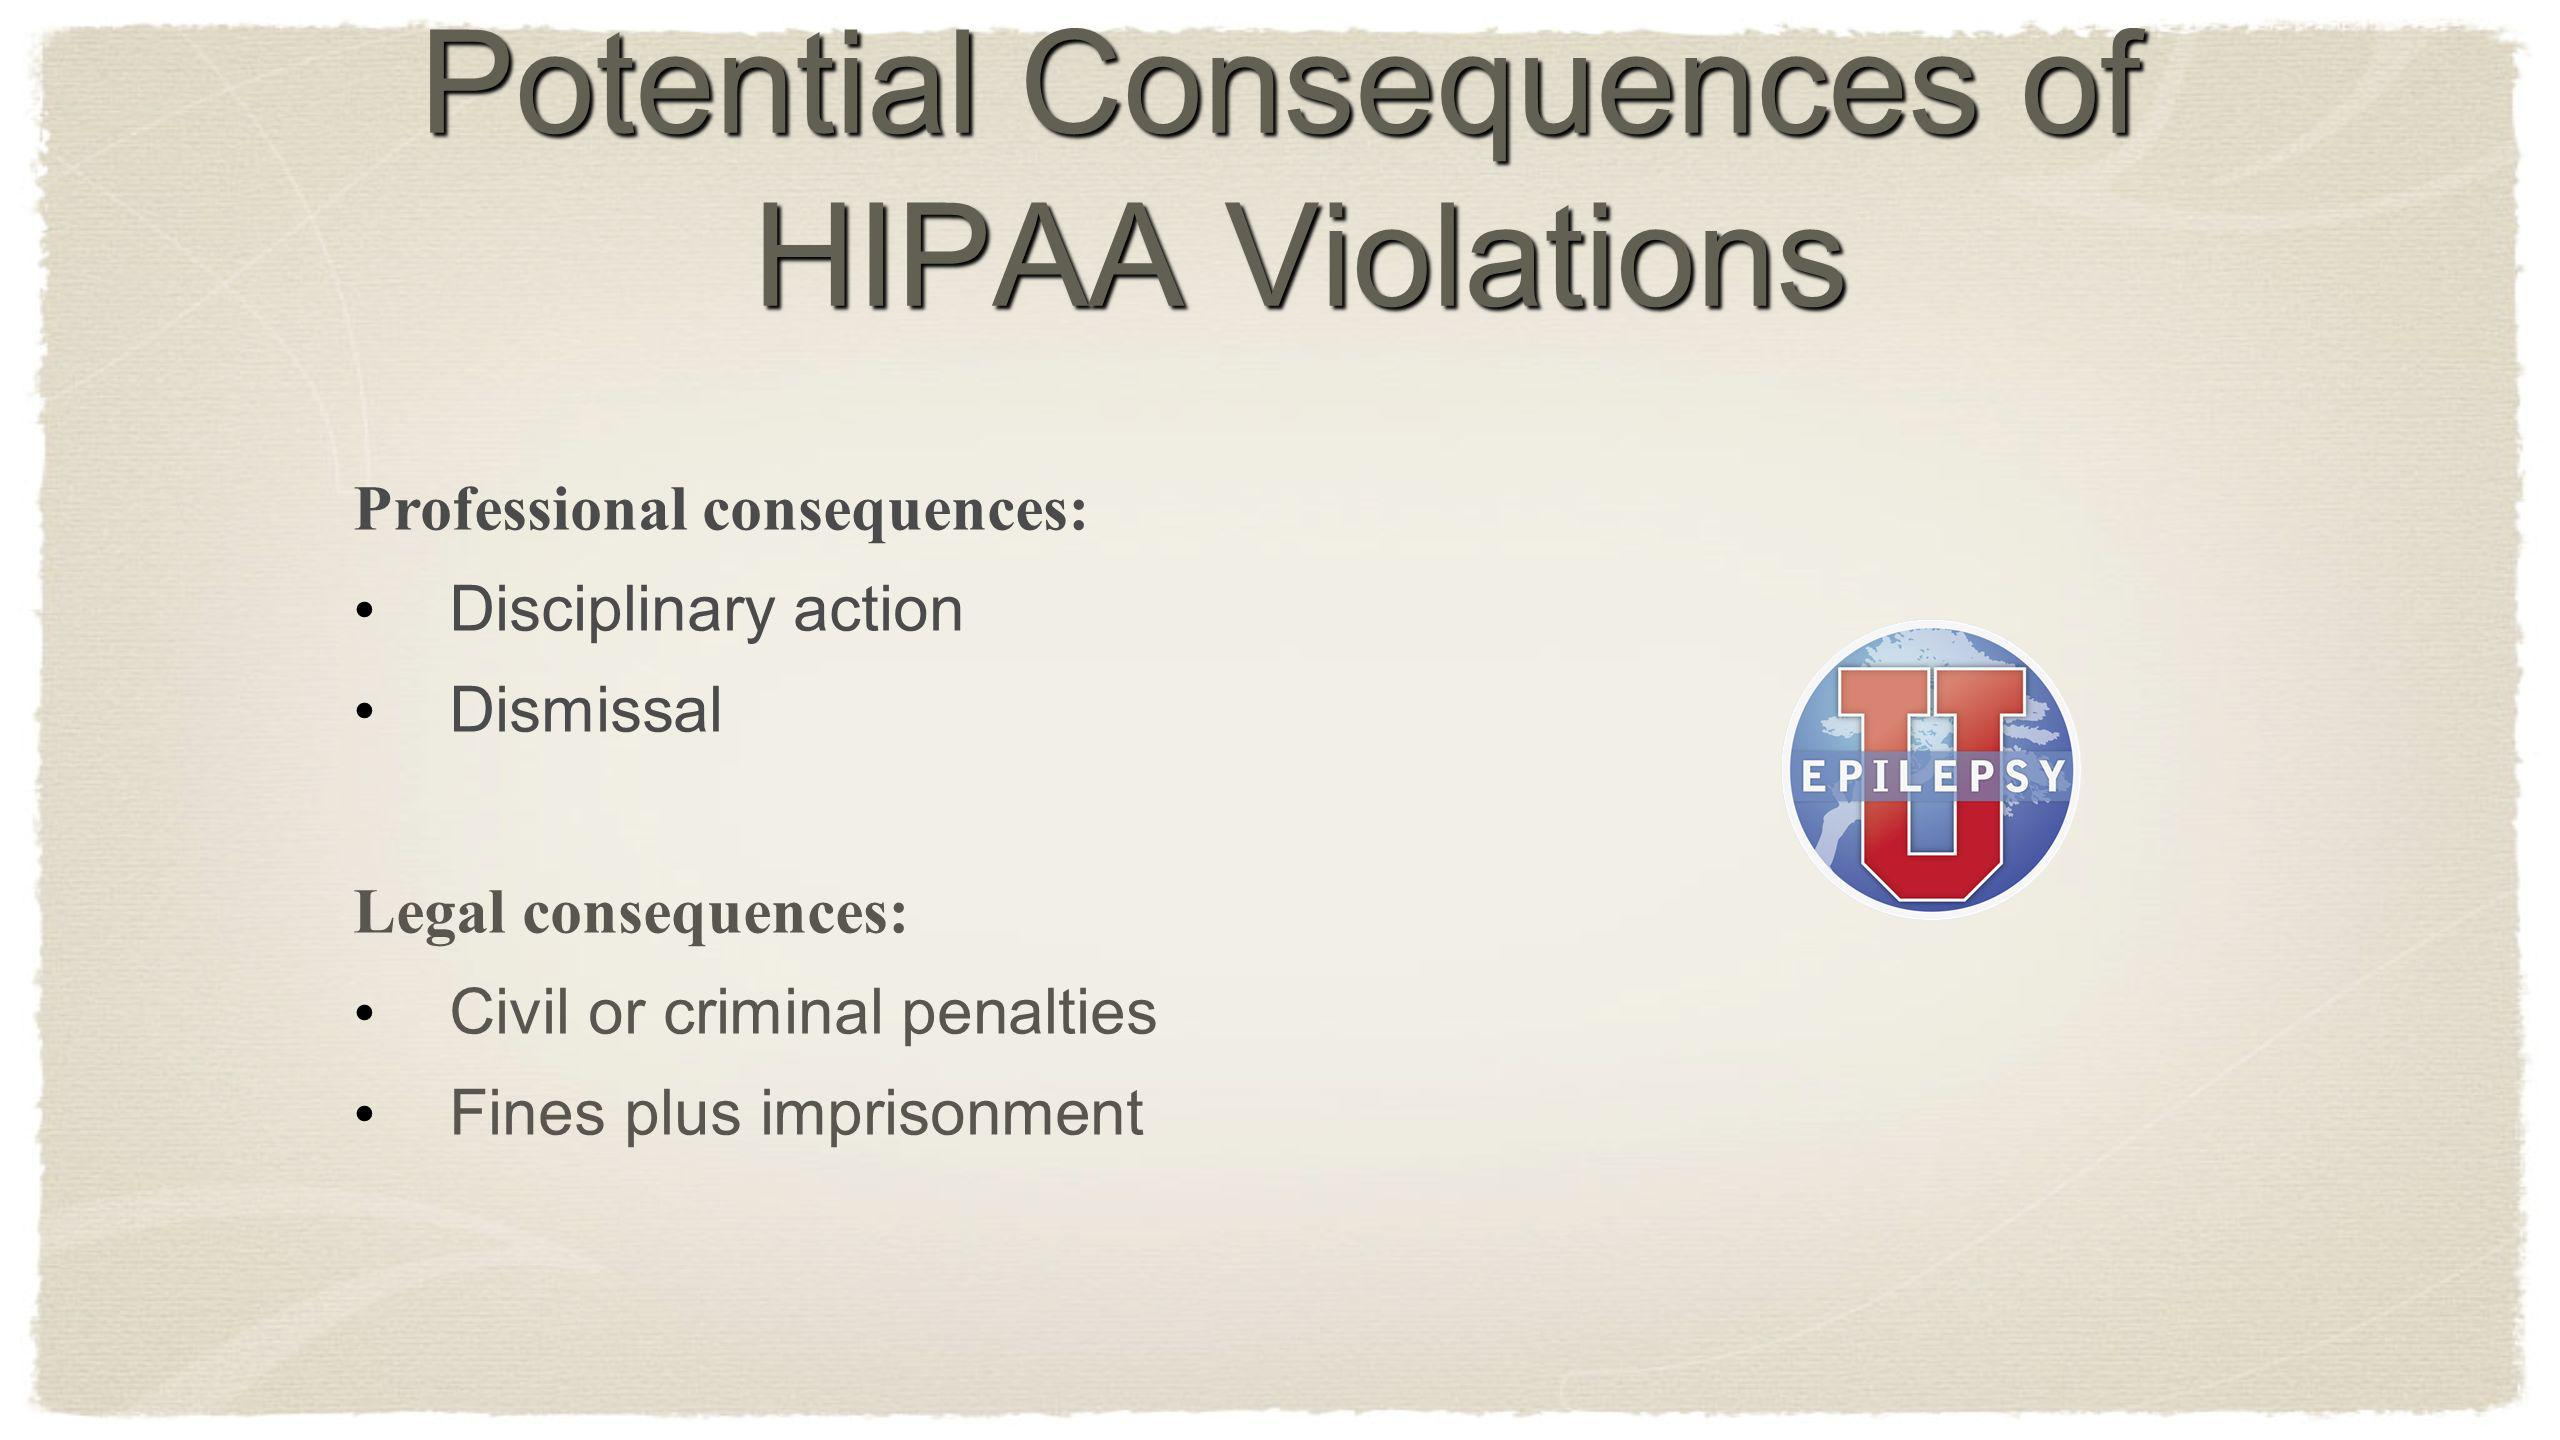 Potential Consequences of HIPAA Violations